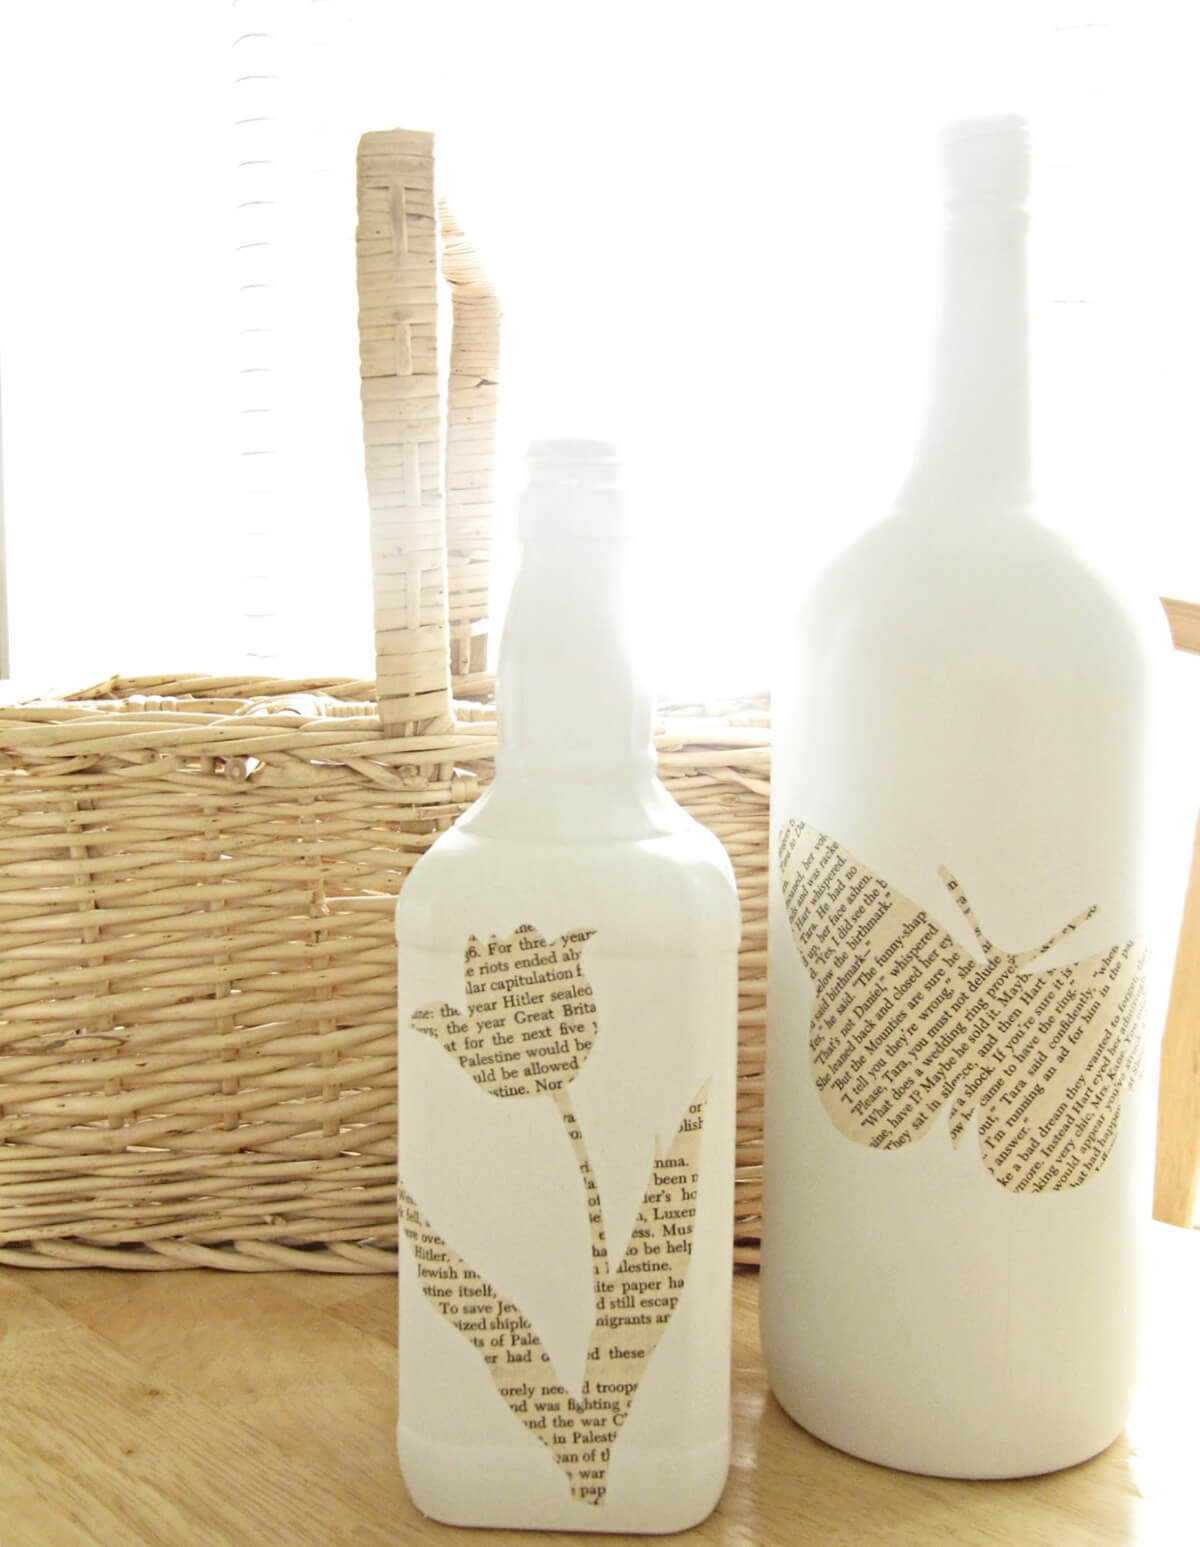 Upcycled Book Page Bottle Décor